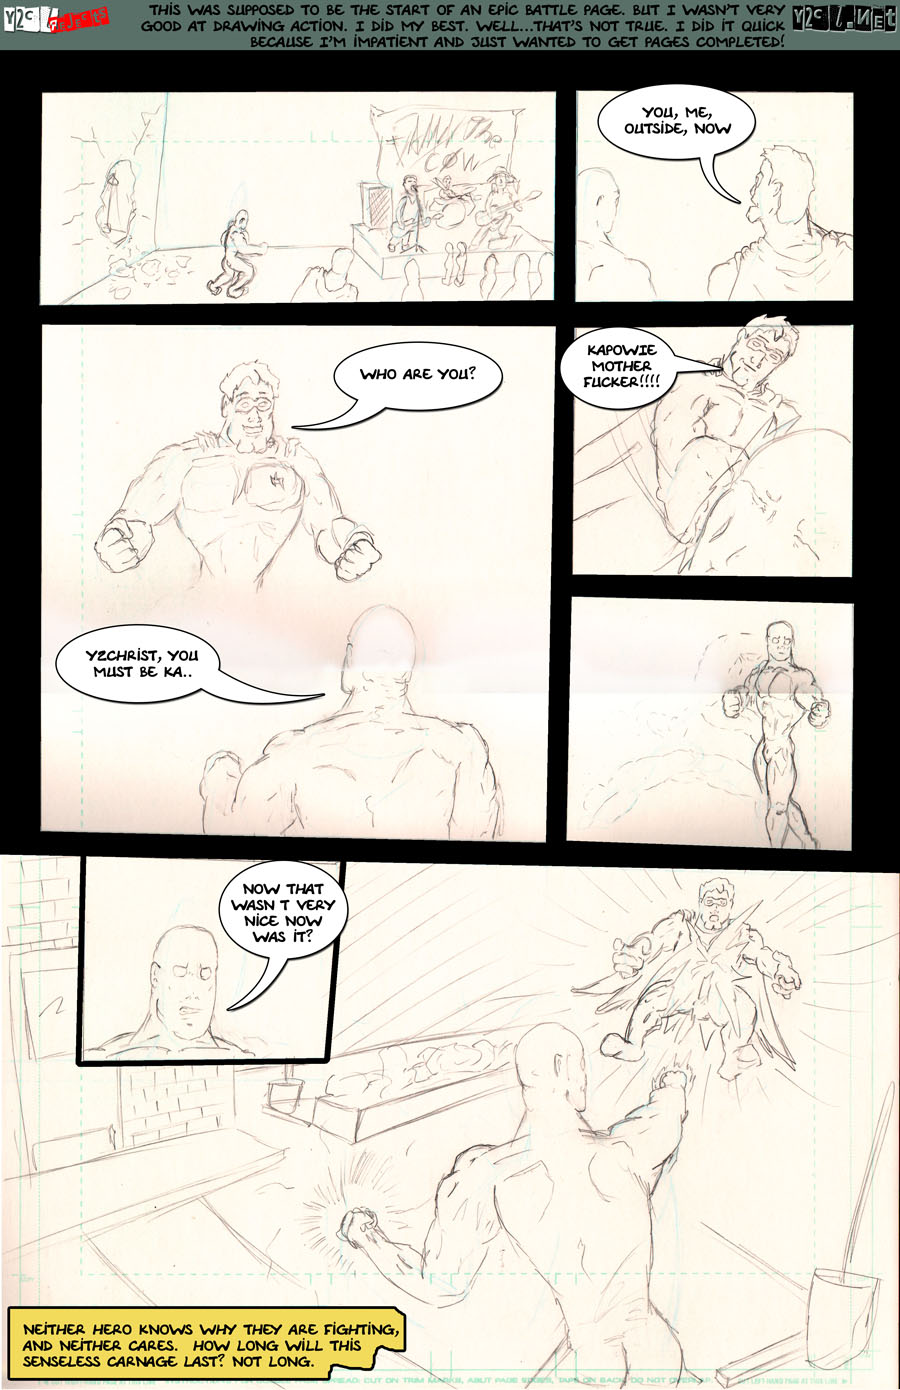 y2chrst ComX Page 2 – The battle of epic misproportions